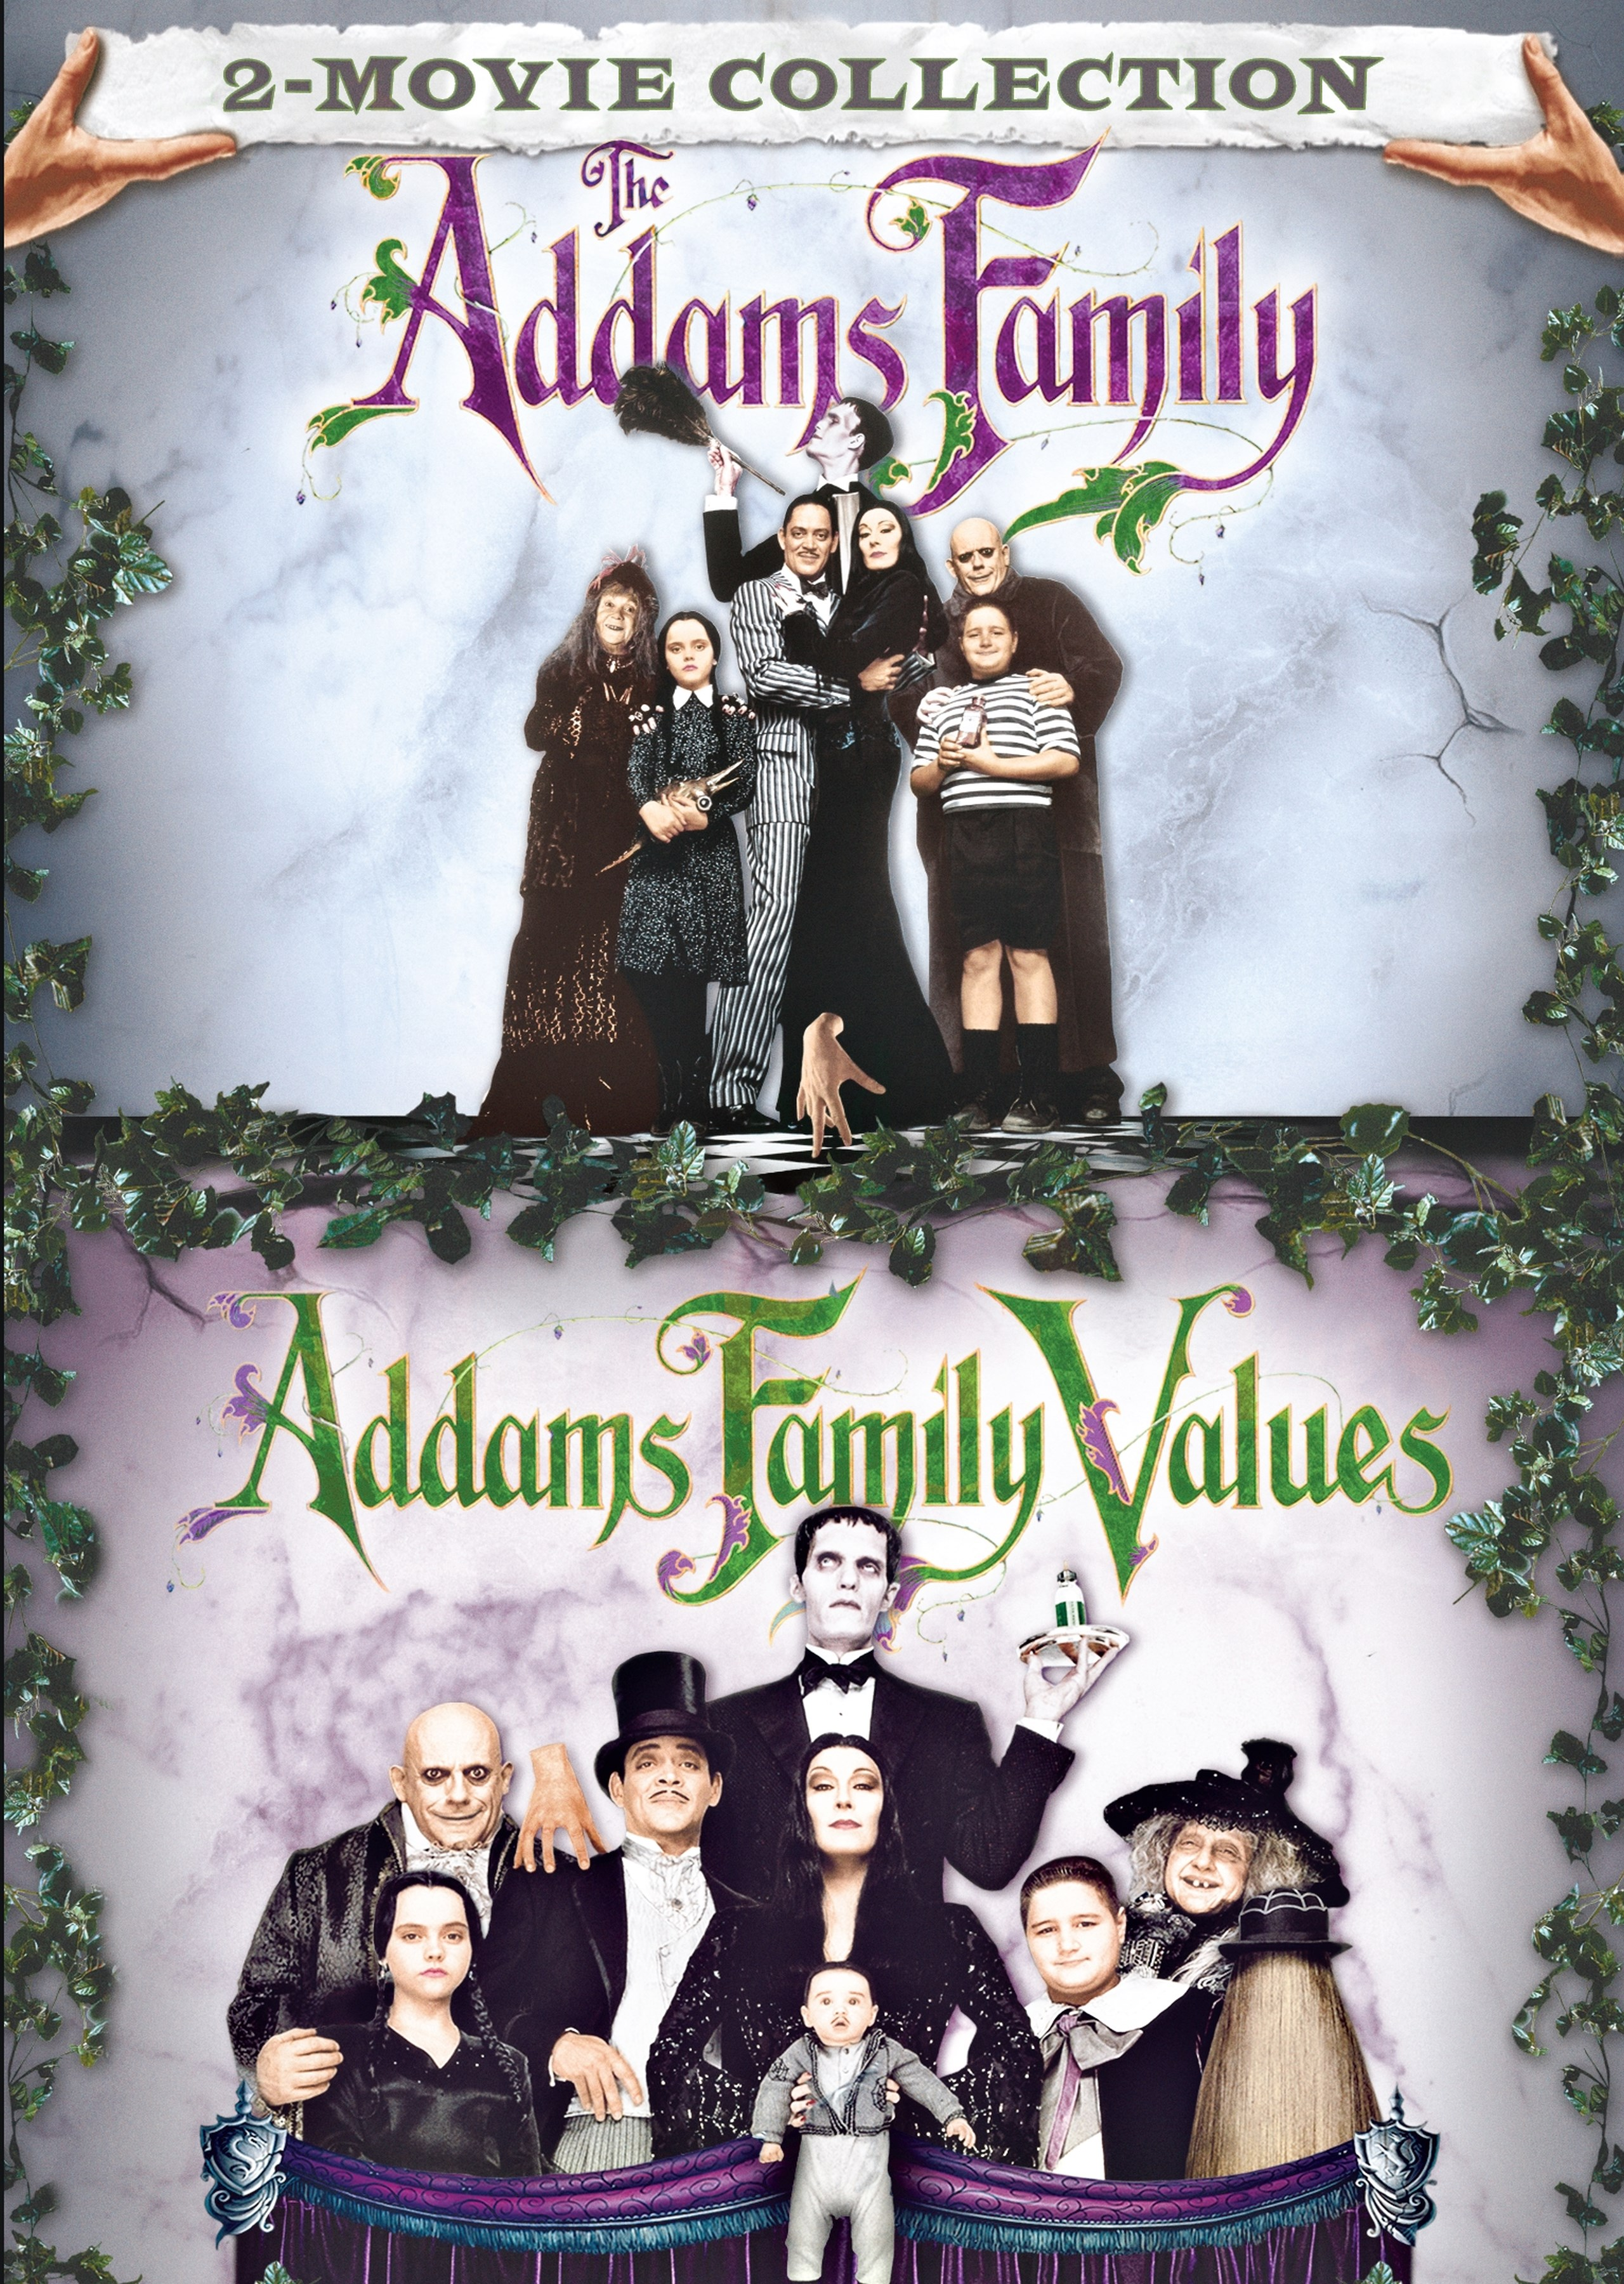 The Addams Family Addams Family Values 2 Discs Dvd